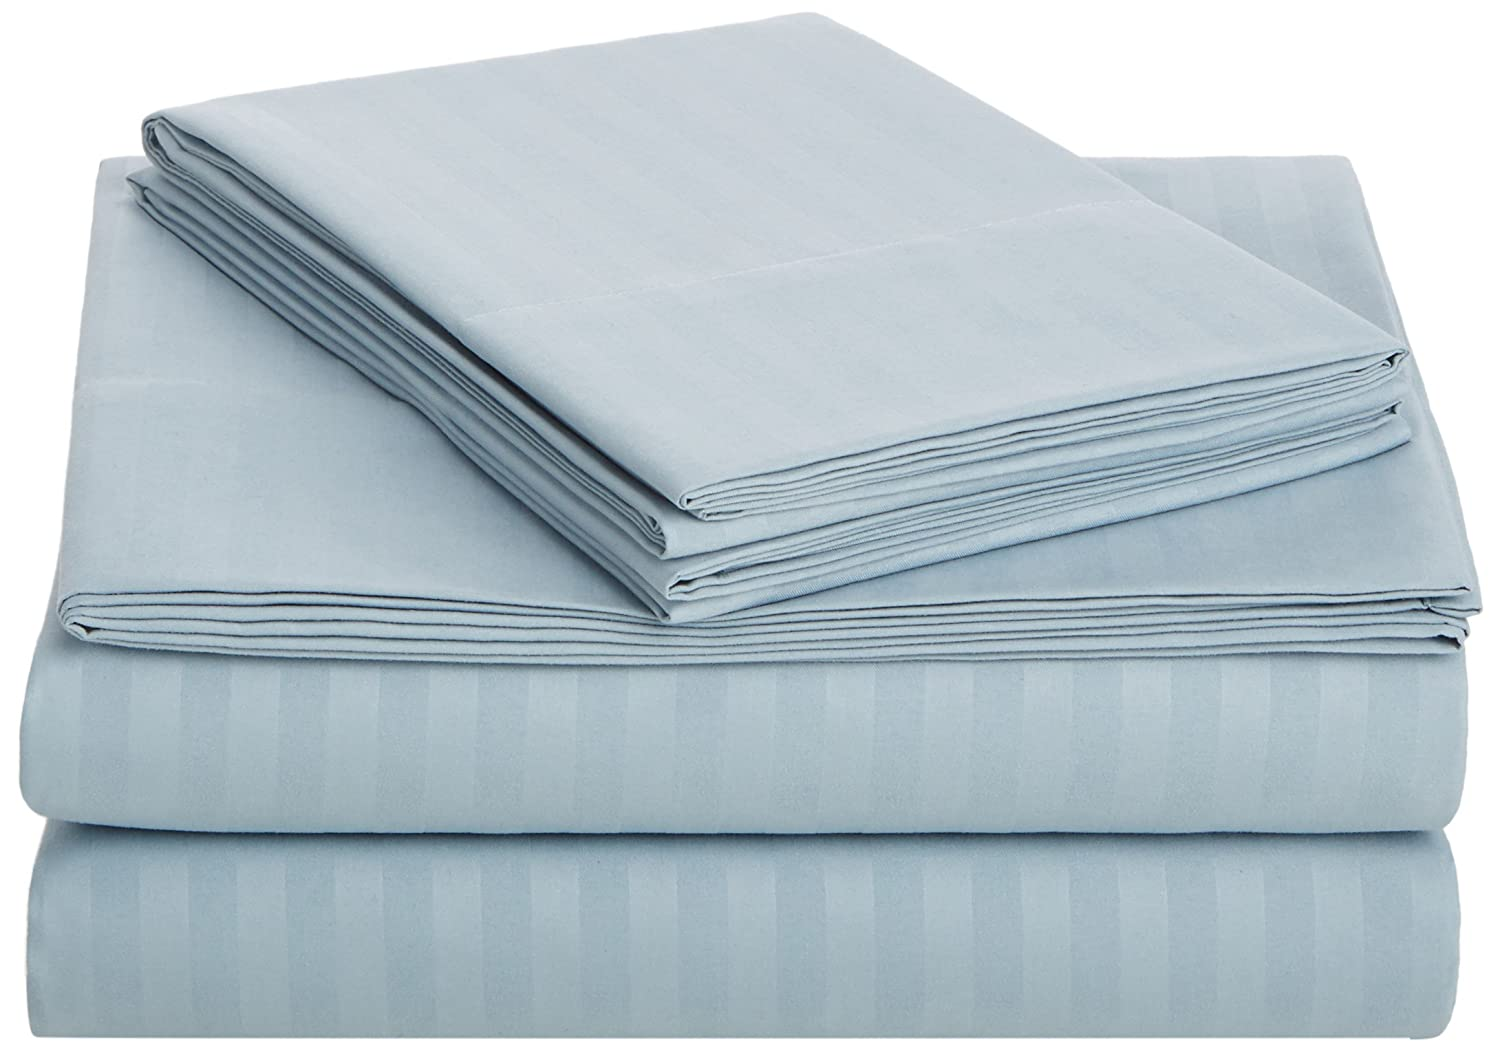 AmazonBasics Deluxe Microfiber Striped Sheet Set, Spa Blue, Queen